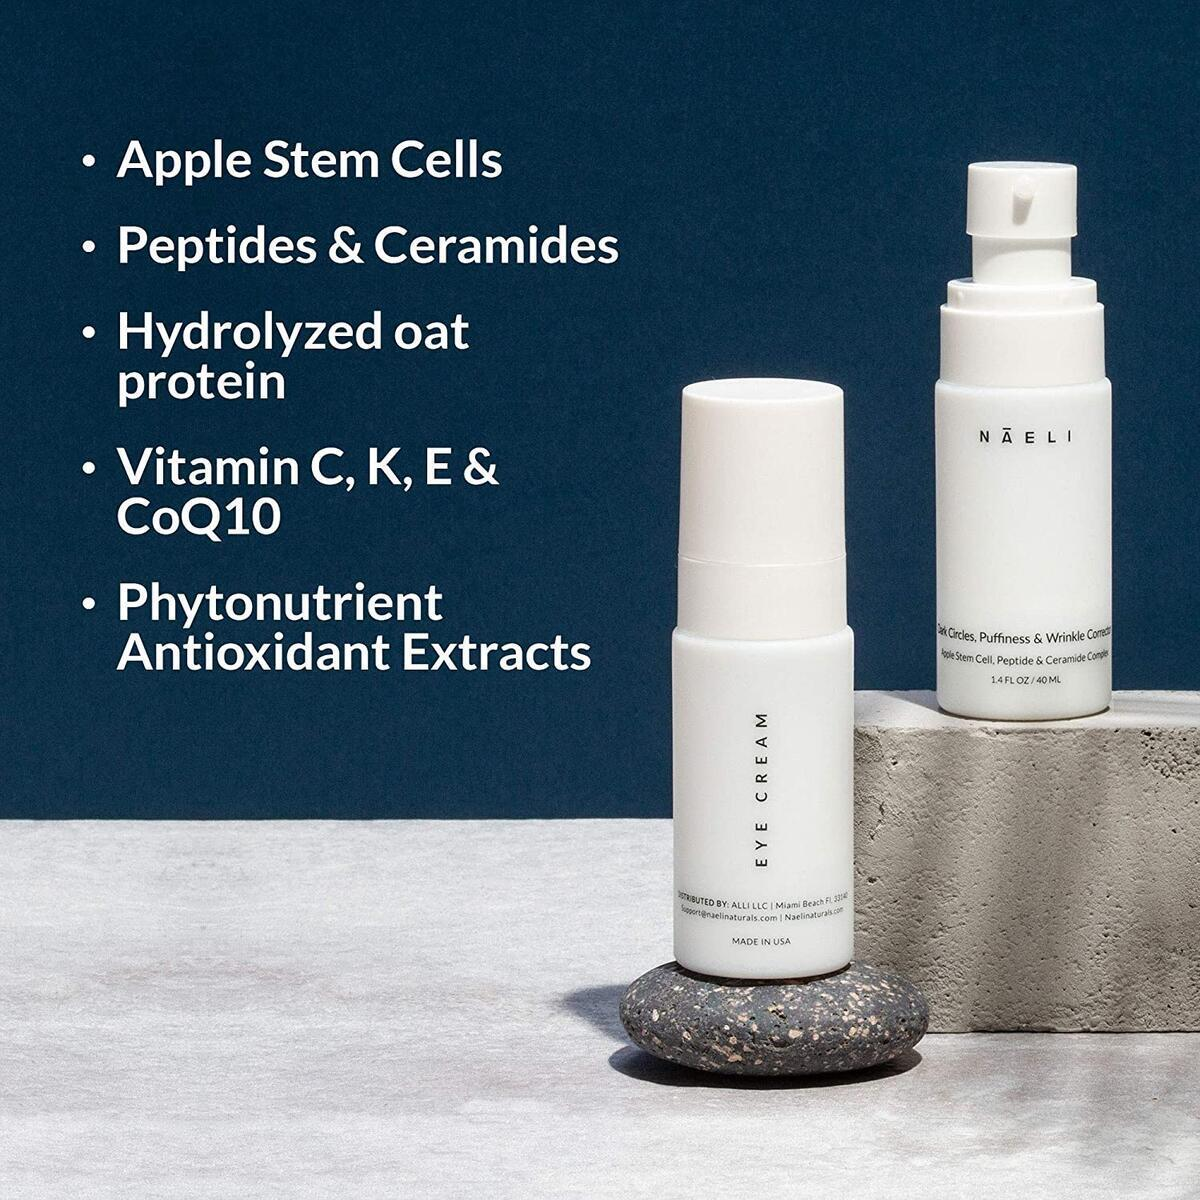 Eye Cream for Dark Circles, Puffiness & Wrinkles - Anti Aging Bags Treatment - Apple Stem Cell, Peptide & Ceramide Complex - Hydrates, Brightens & Restores Under Eye, 1.4 oz.